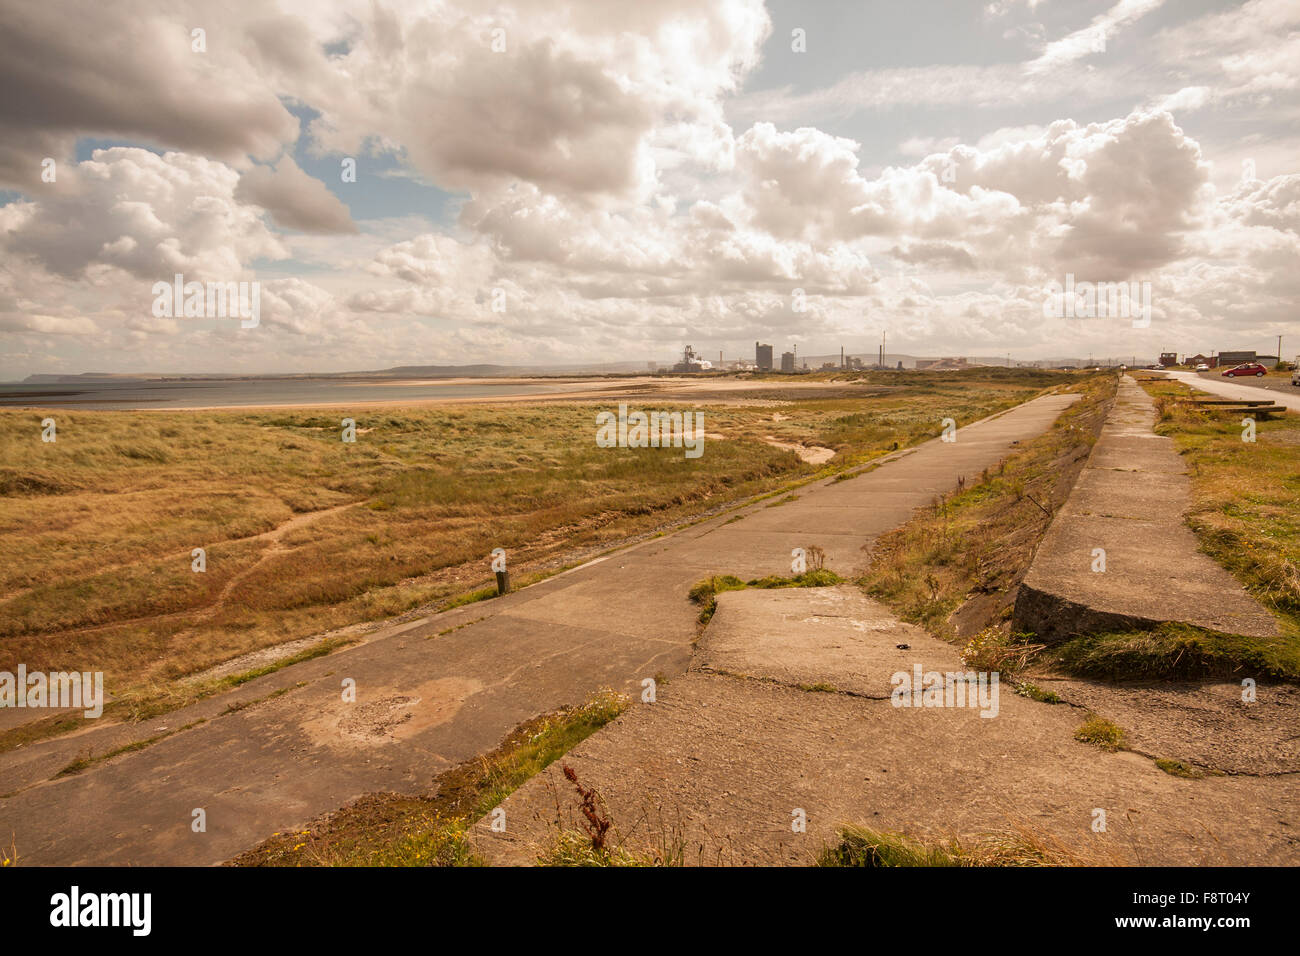 A view of the rugged north east coastline at Redcar showing the former blast furnace works and cloudy blue skies - Stock Image